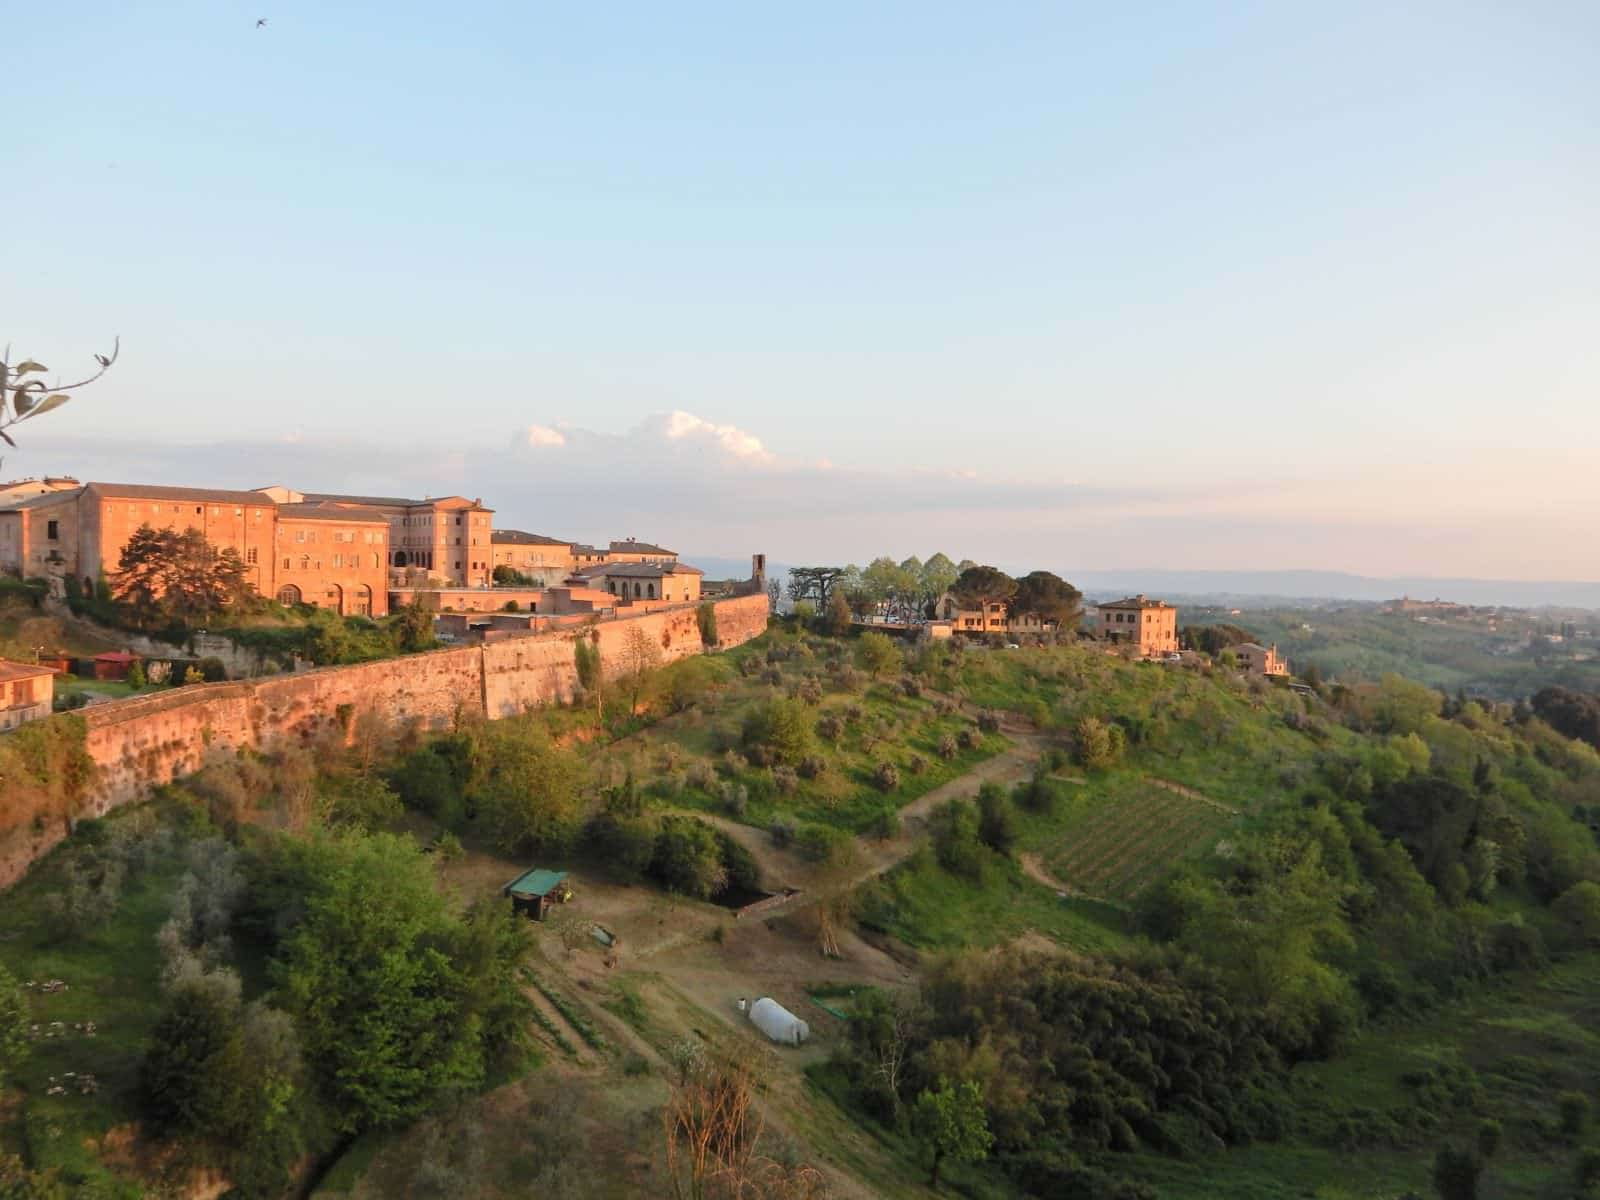 Scenic and Savory Siena, Italy – Part 1, the Sights